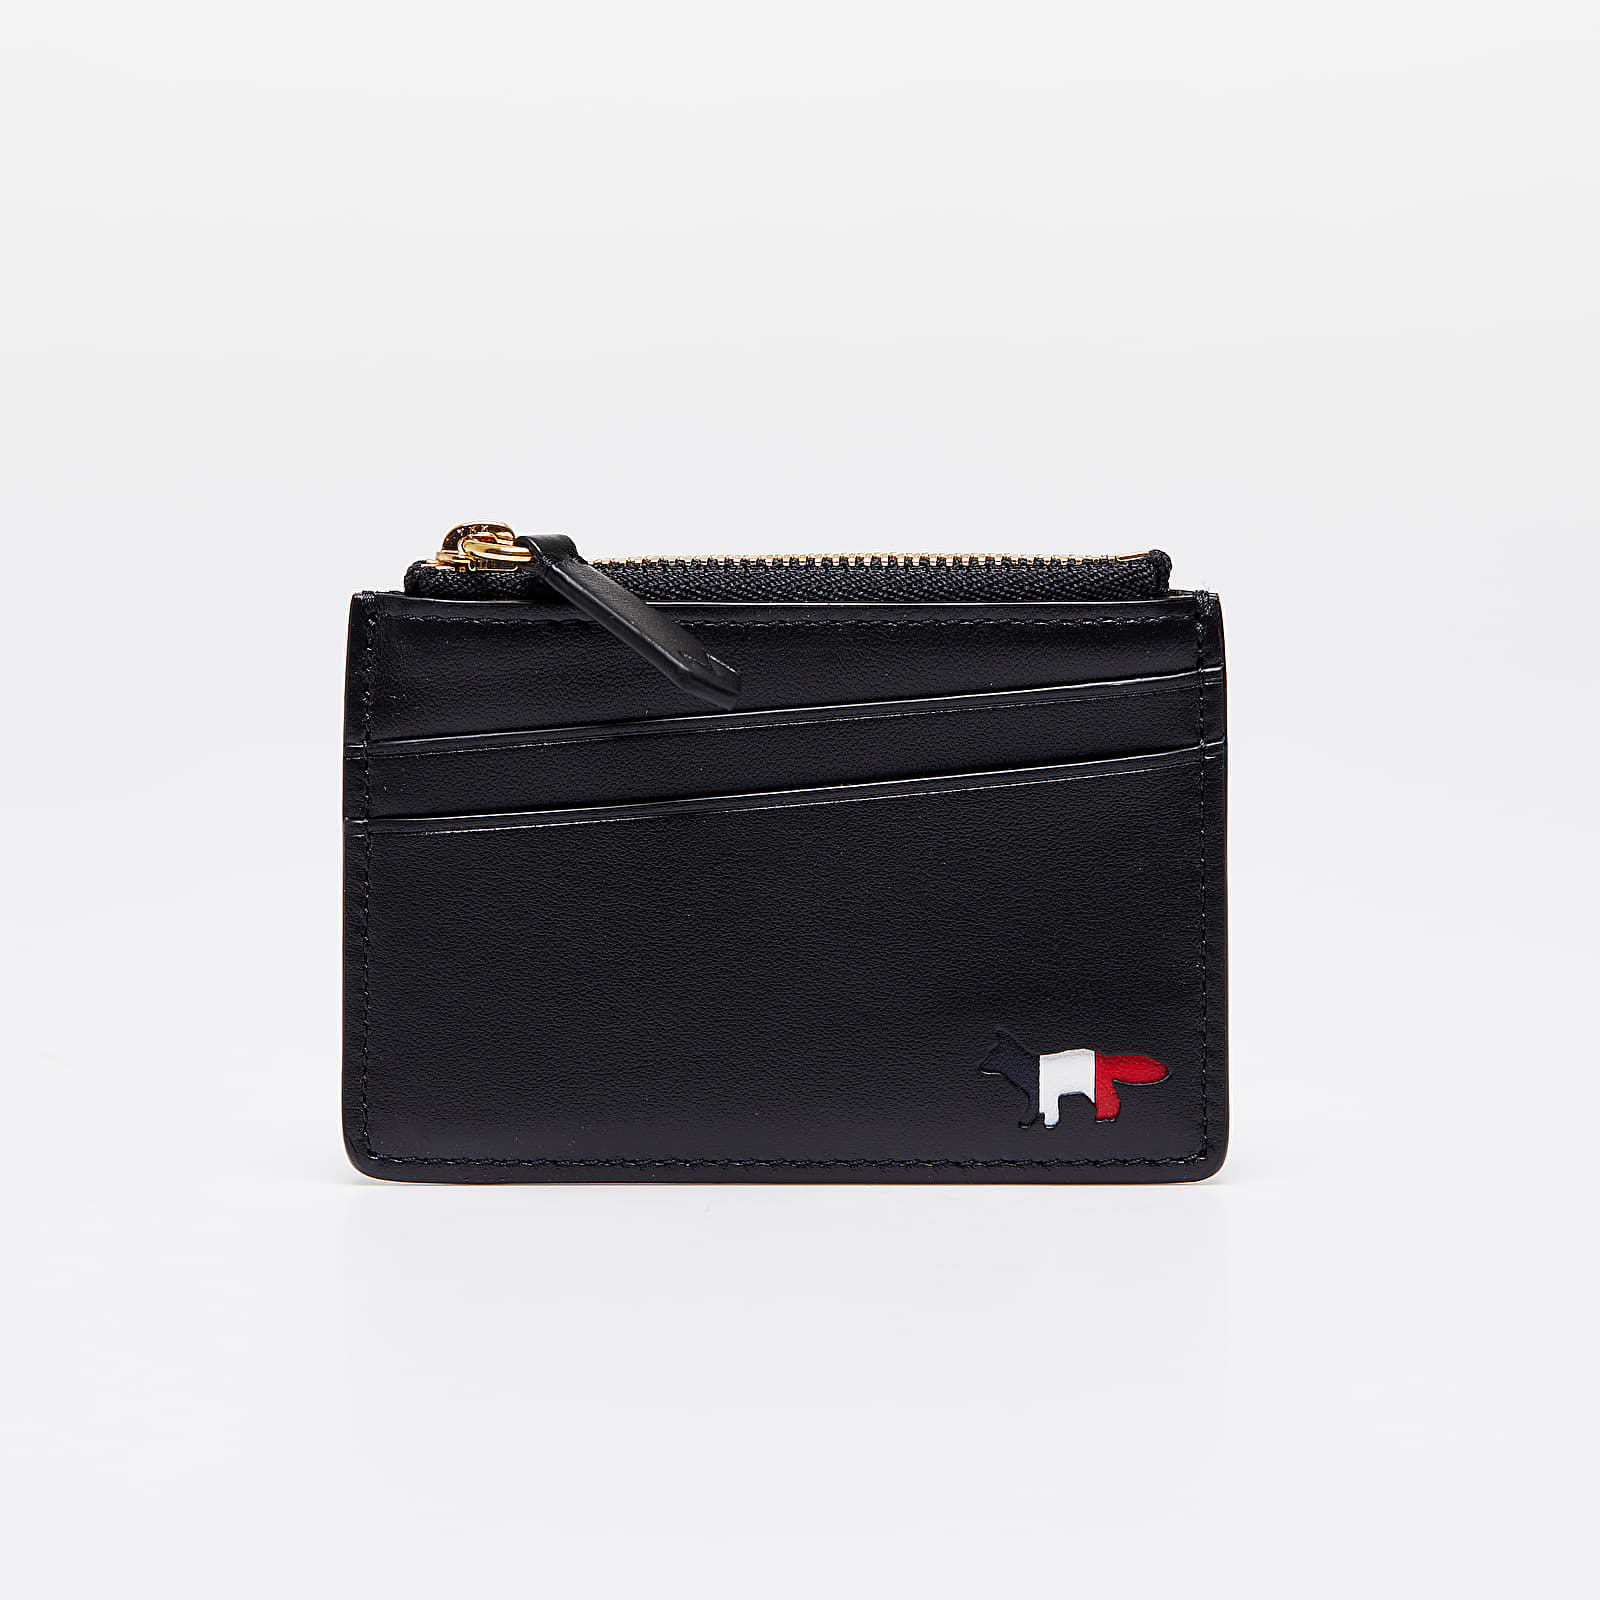 MAISON KITSUNÉ Tricolor ZIipped Leather Card Holder